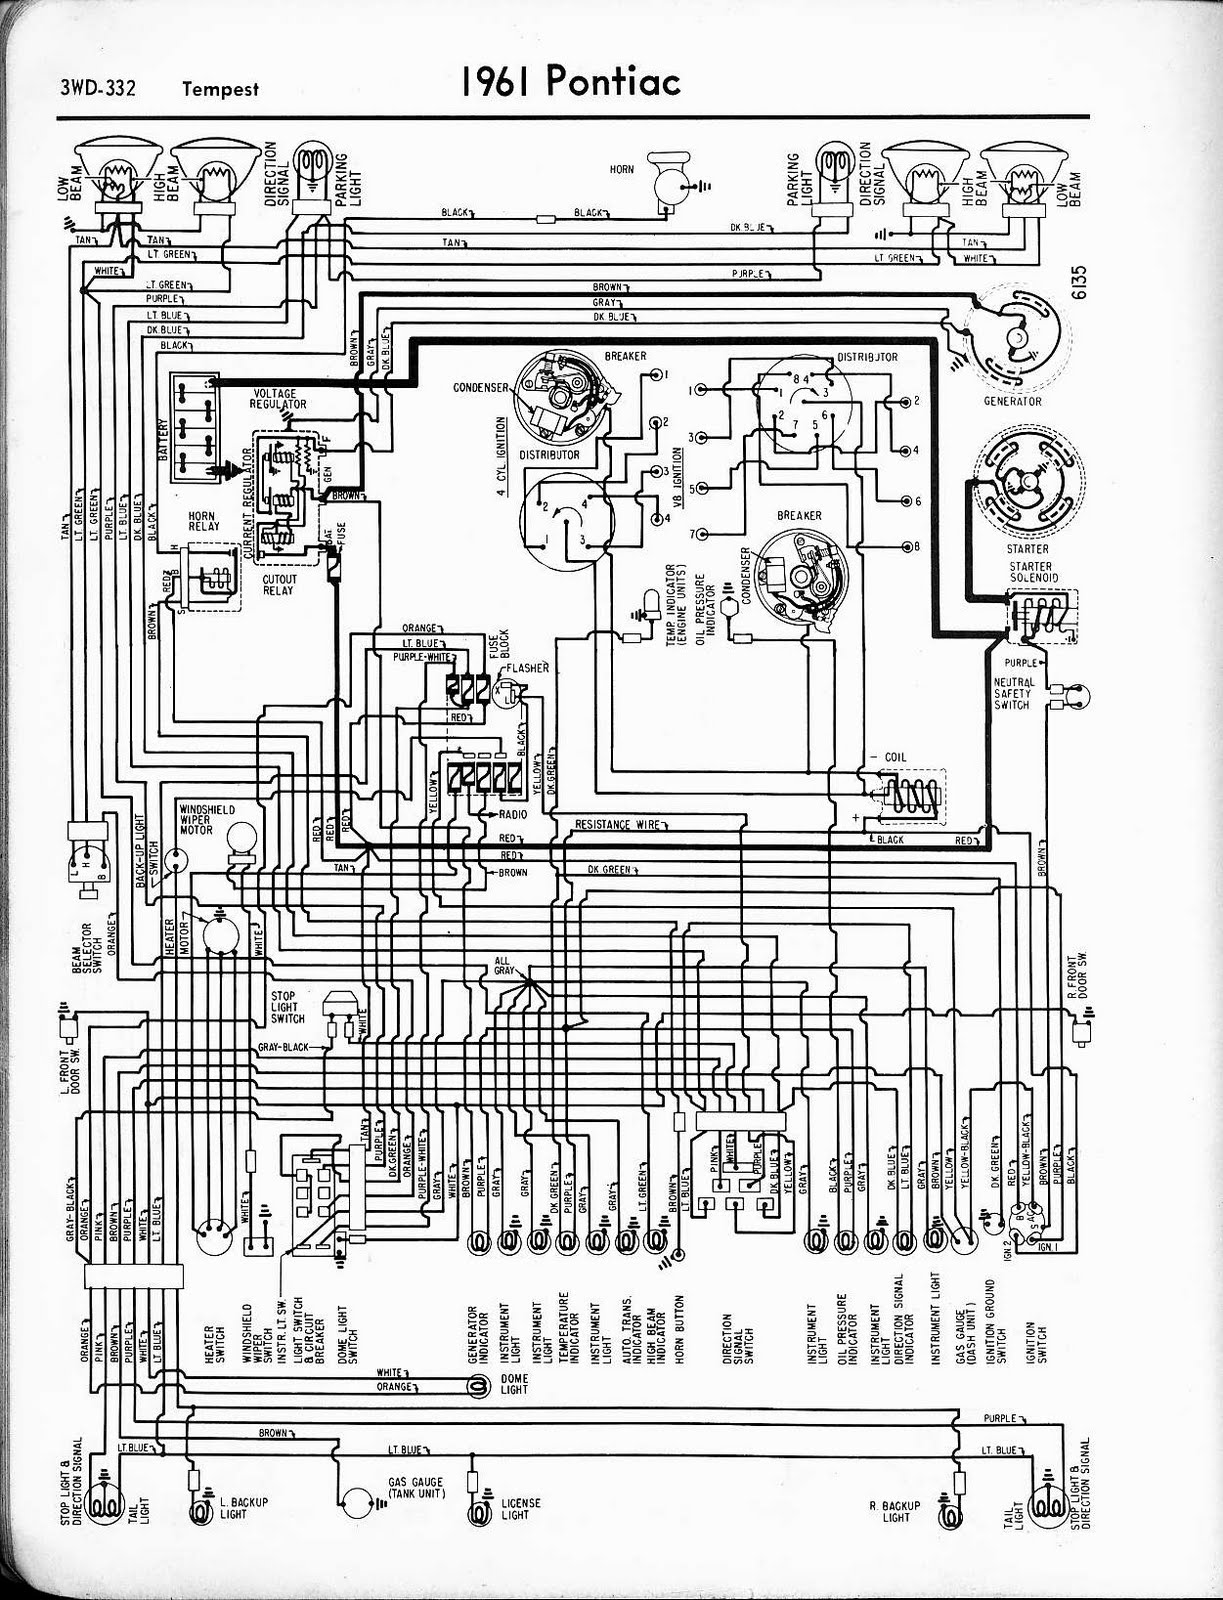 67 nova dash wiring diagram